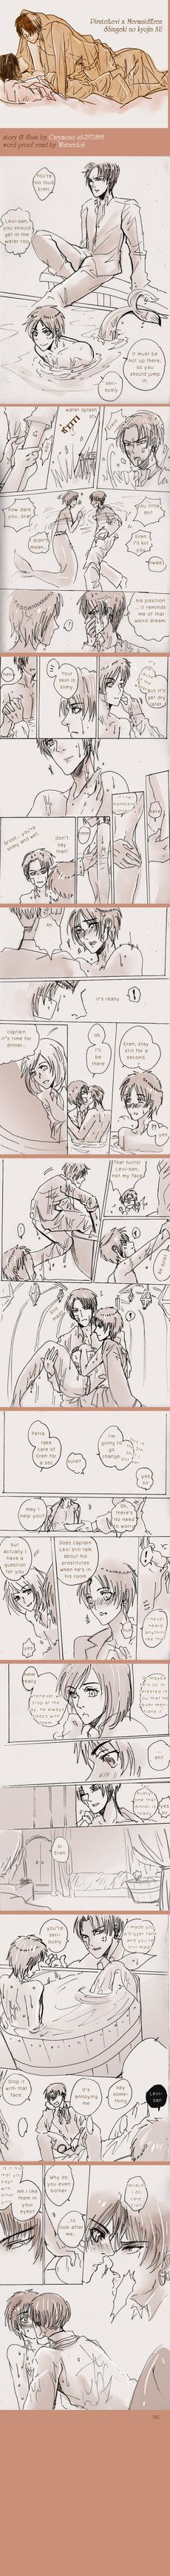 59 Best comics (Eren x Levi) images in 2015 | Attack on